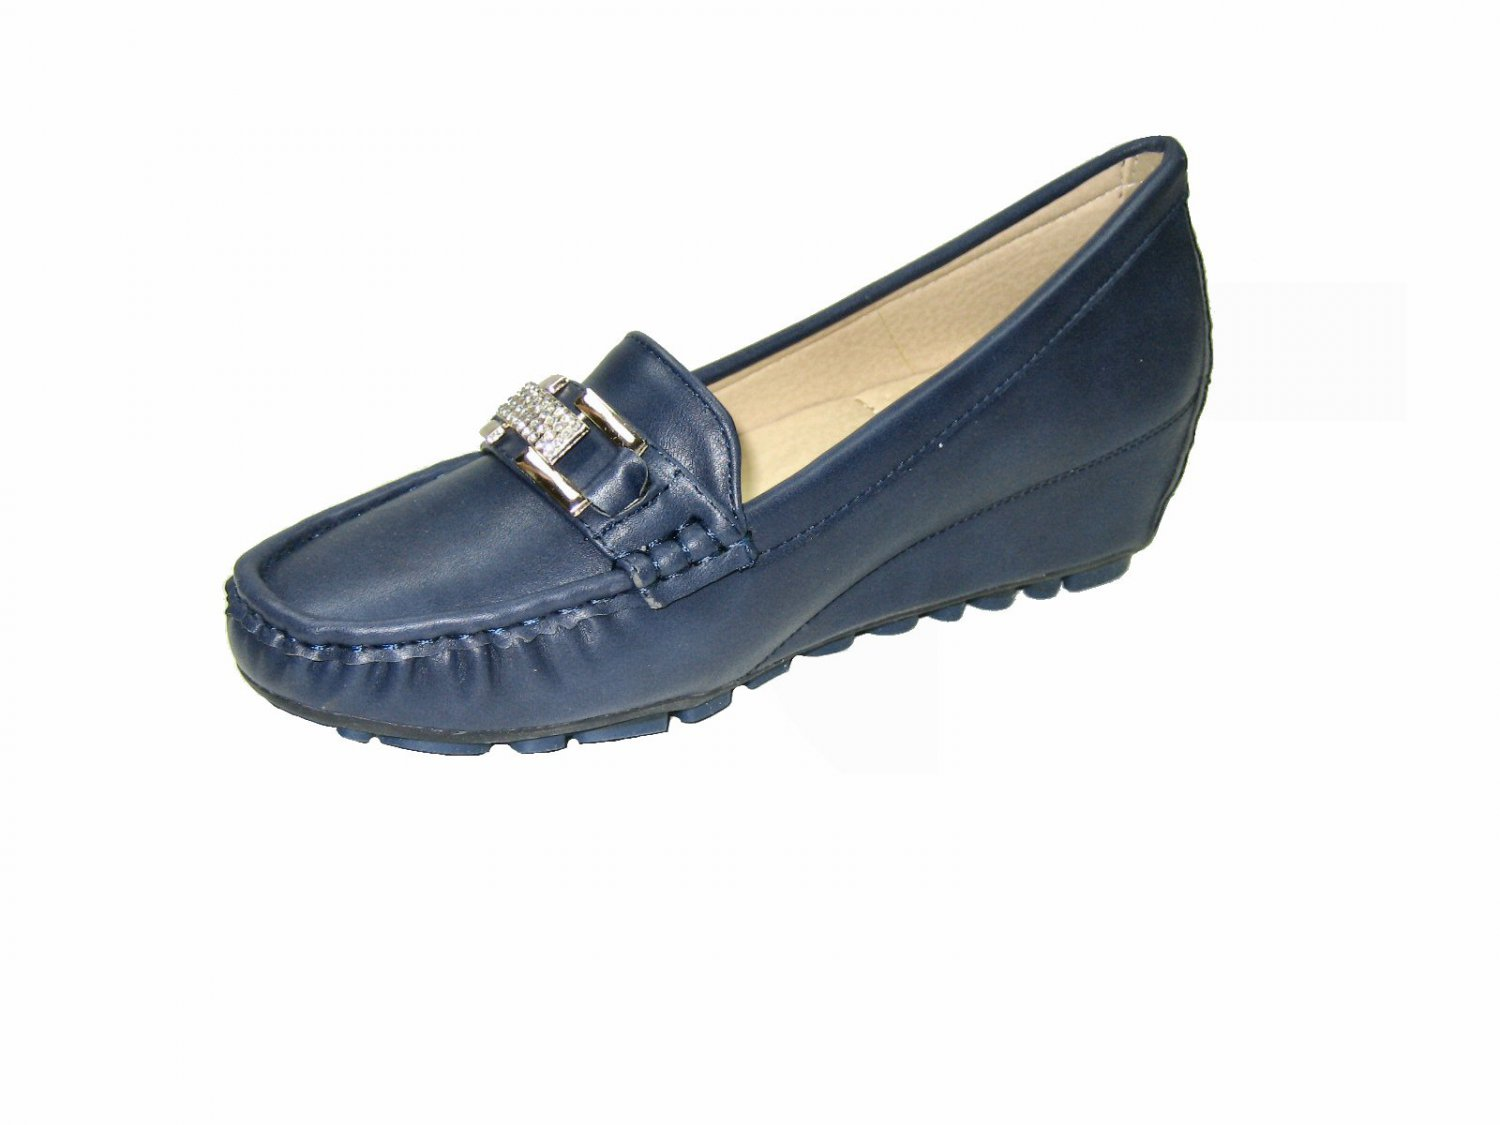 Nature Breeze SouthBay-2p 2 inch wedge heel comfort loafer rhinestone pumps shoe navy size 10